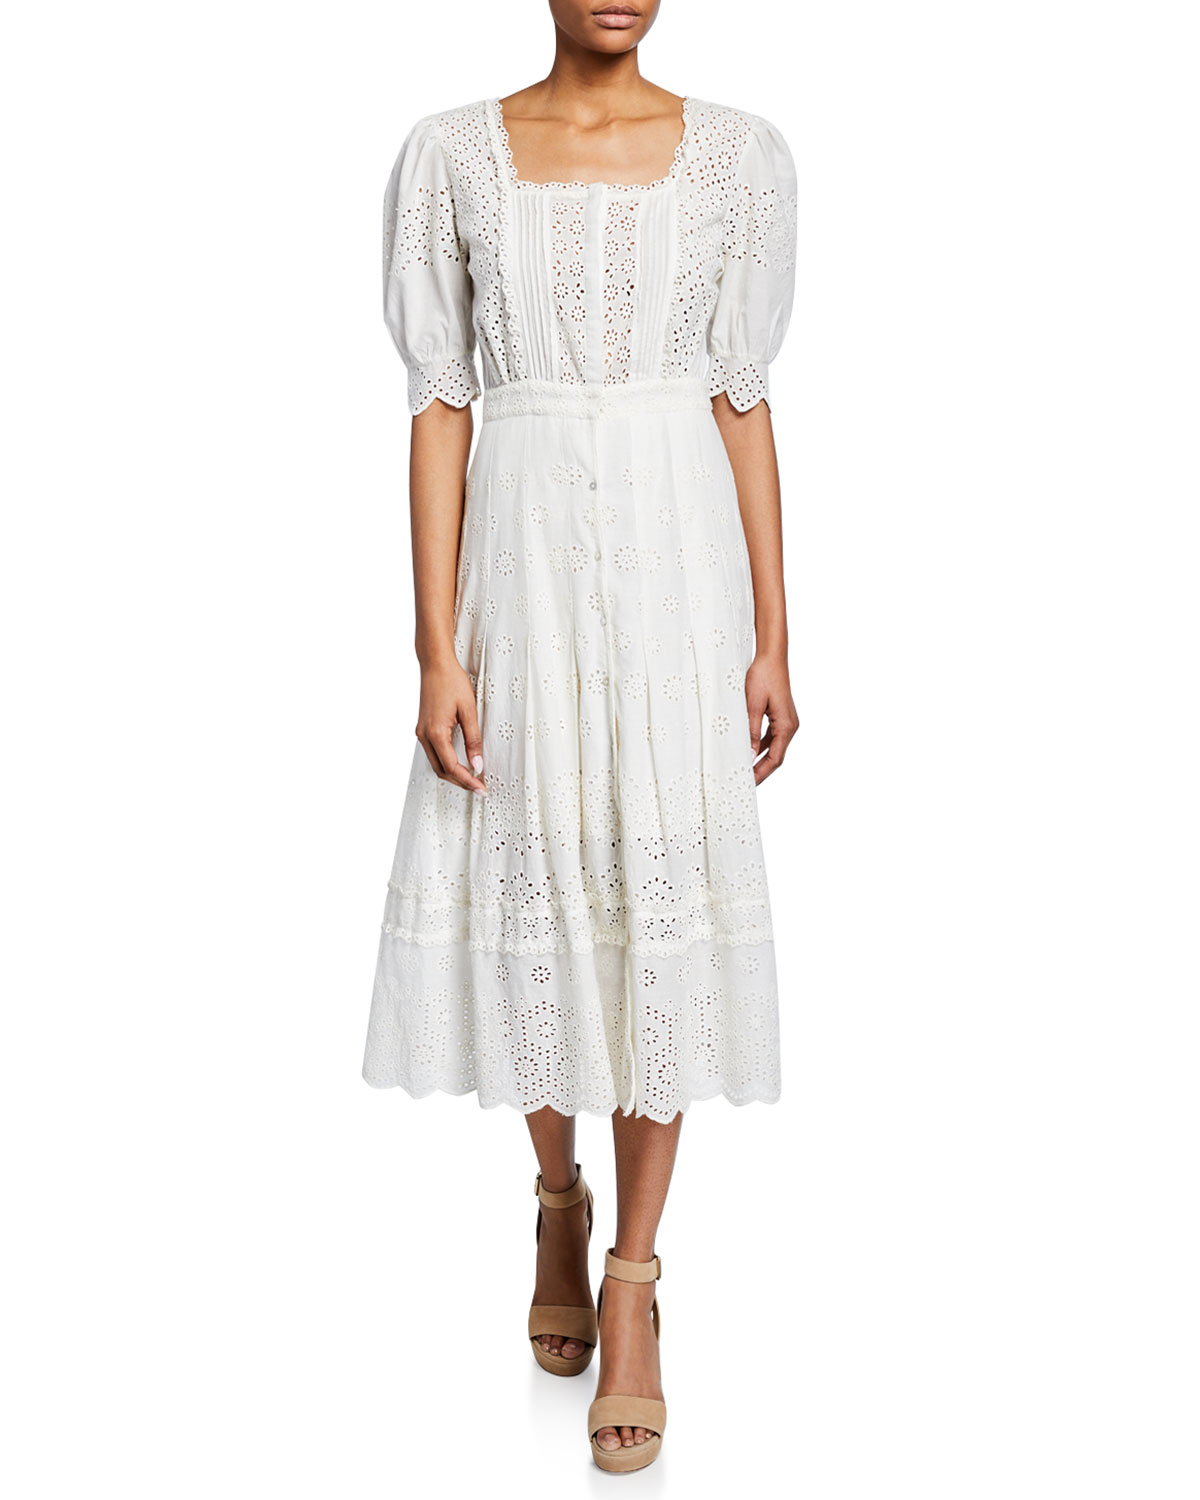 spring bridal shower dress floral white eyelet midi